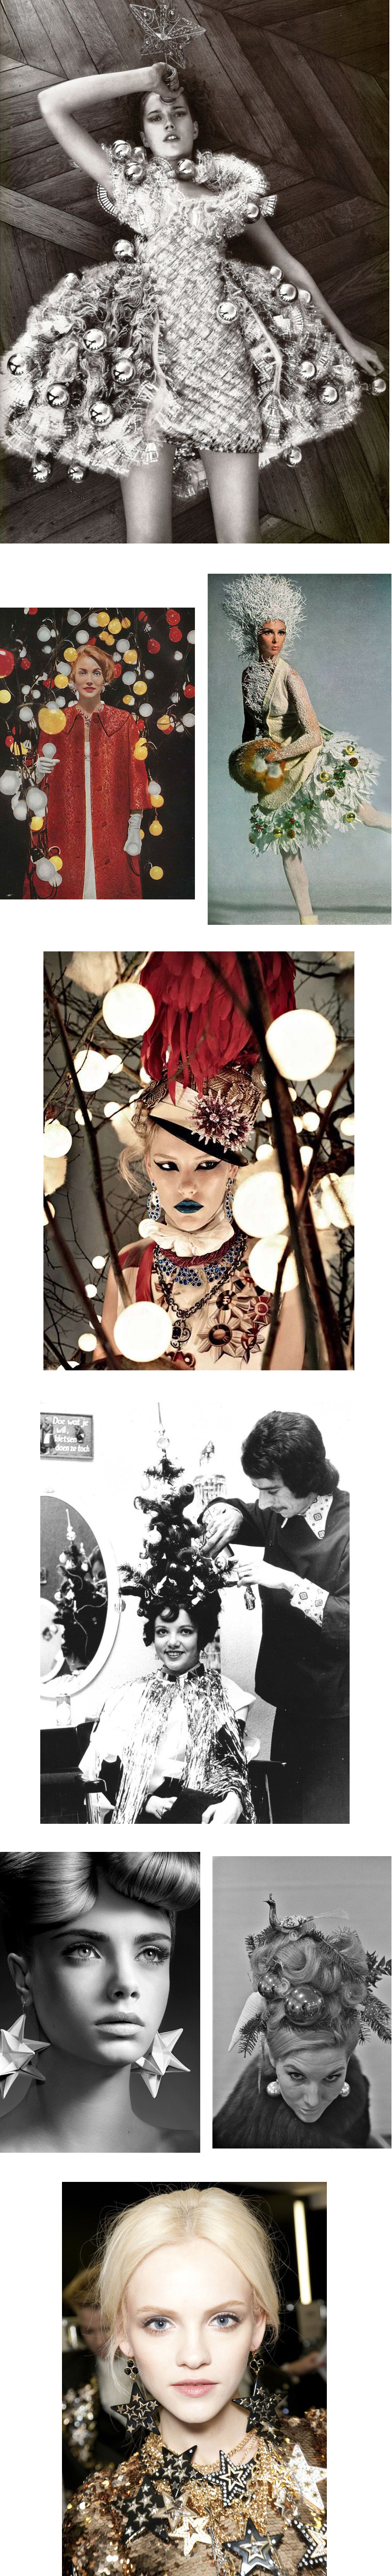 in-detail-moodboard-christmas-baubals-01